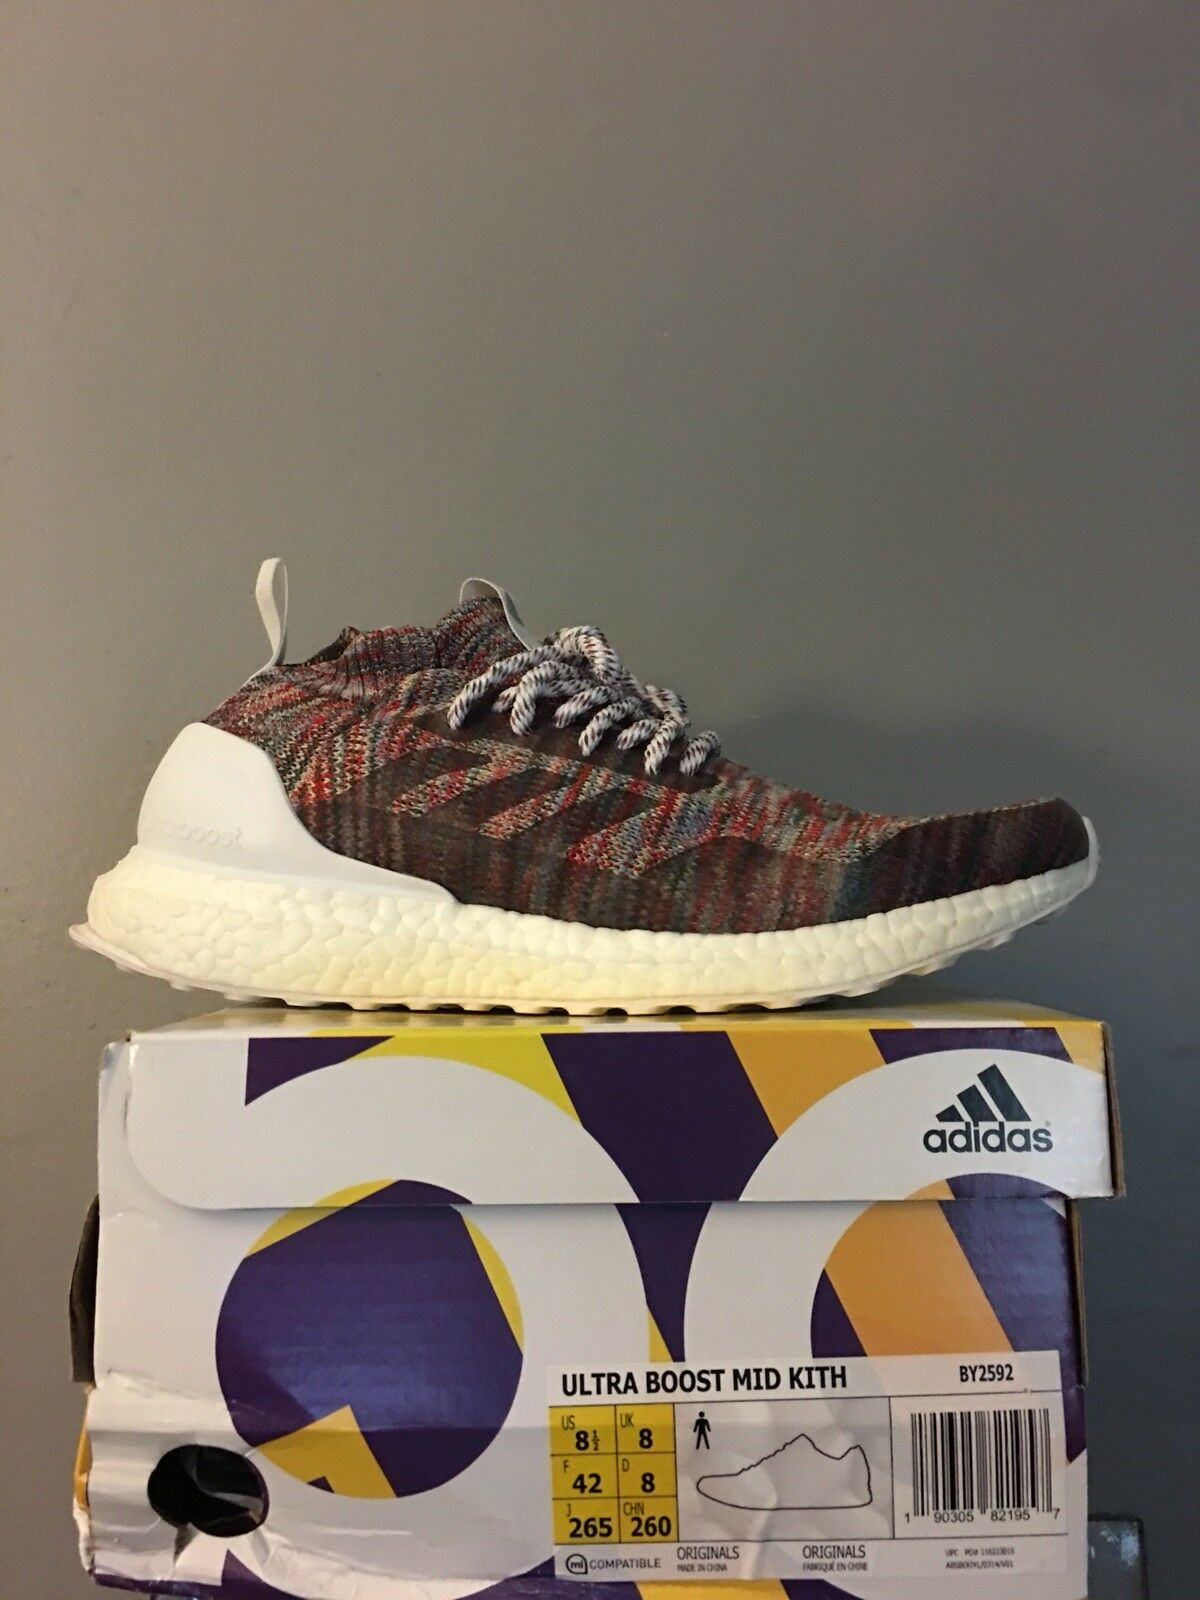 Adidas Ultra Boost Mid Kith Aspen Size 8.5